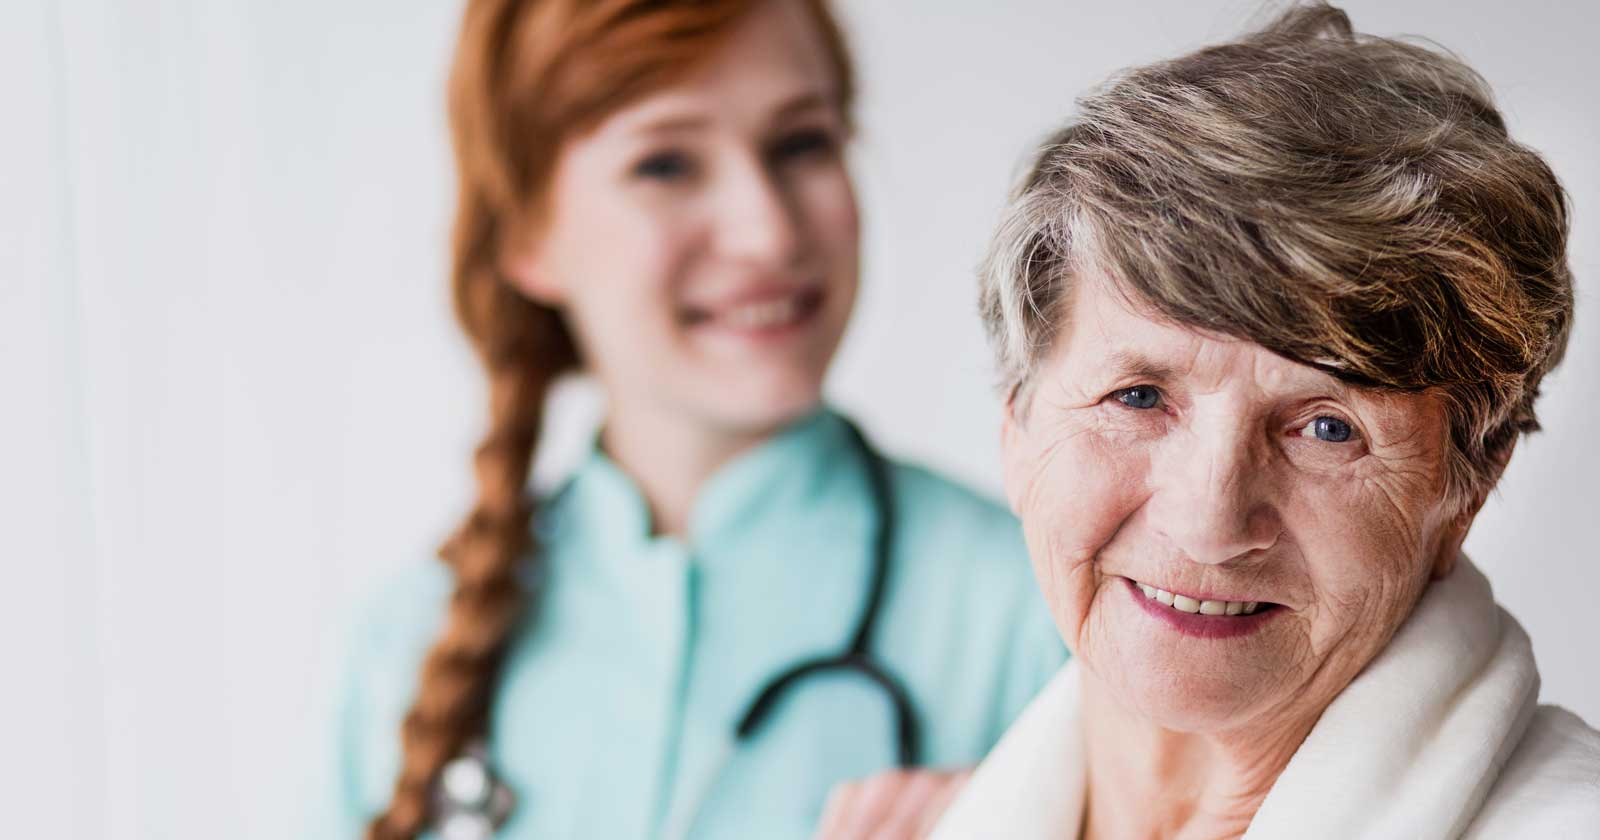 caring-for-seniors-what-to-watch-for-and-prevention Article-Image-1600x840